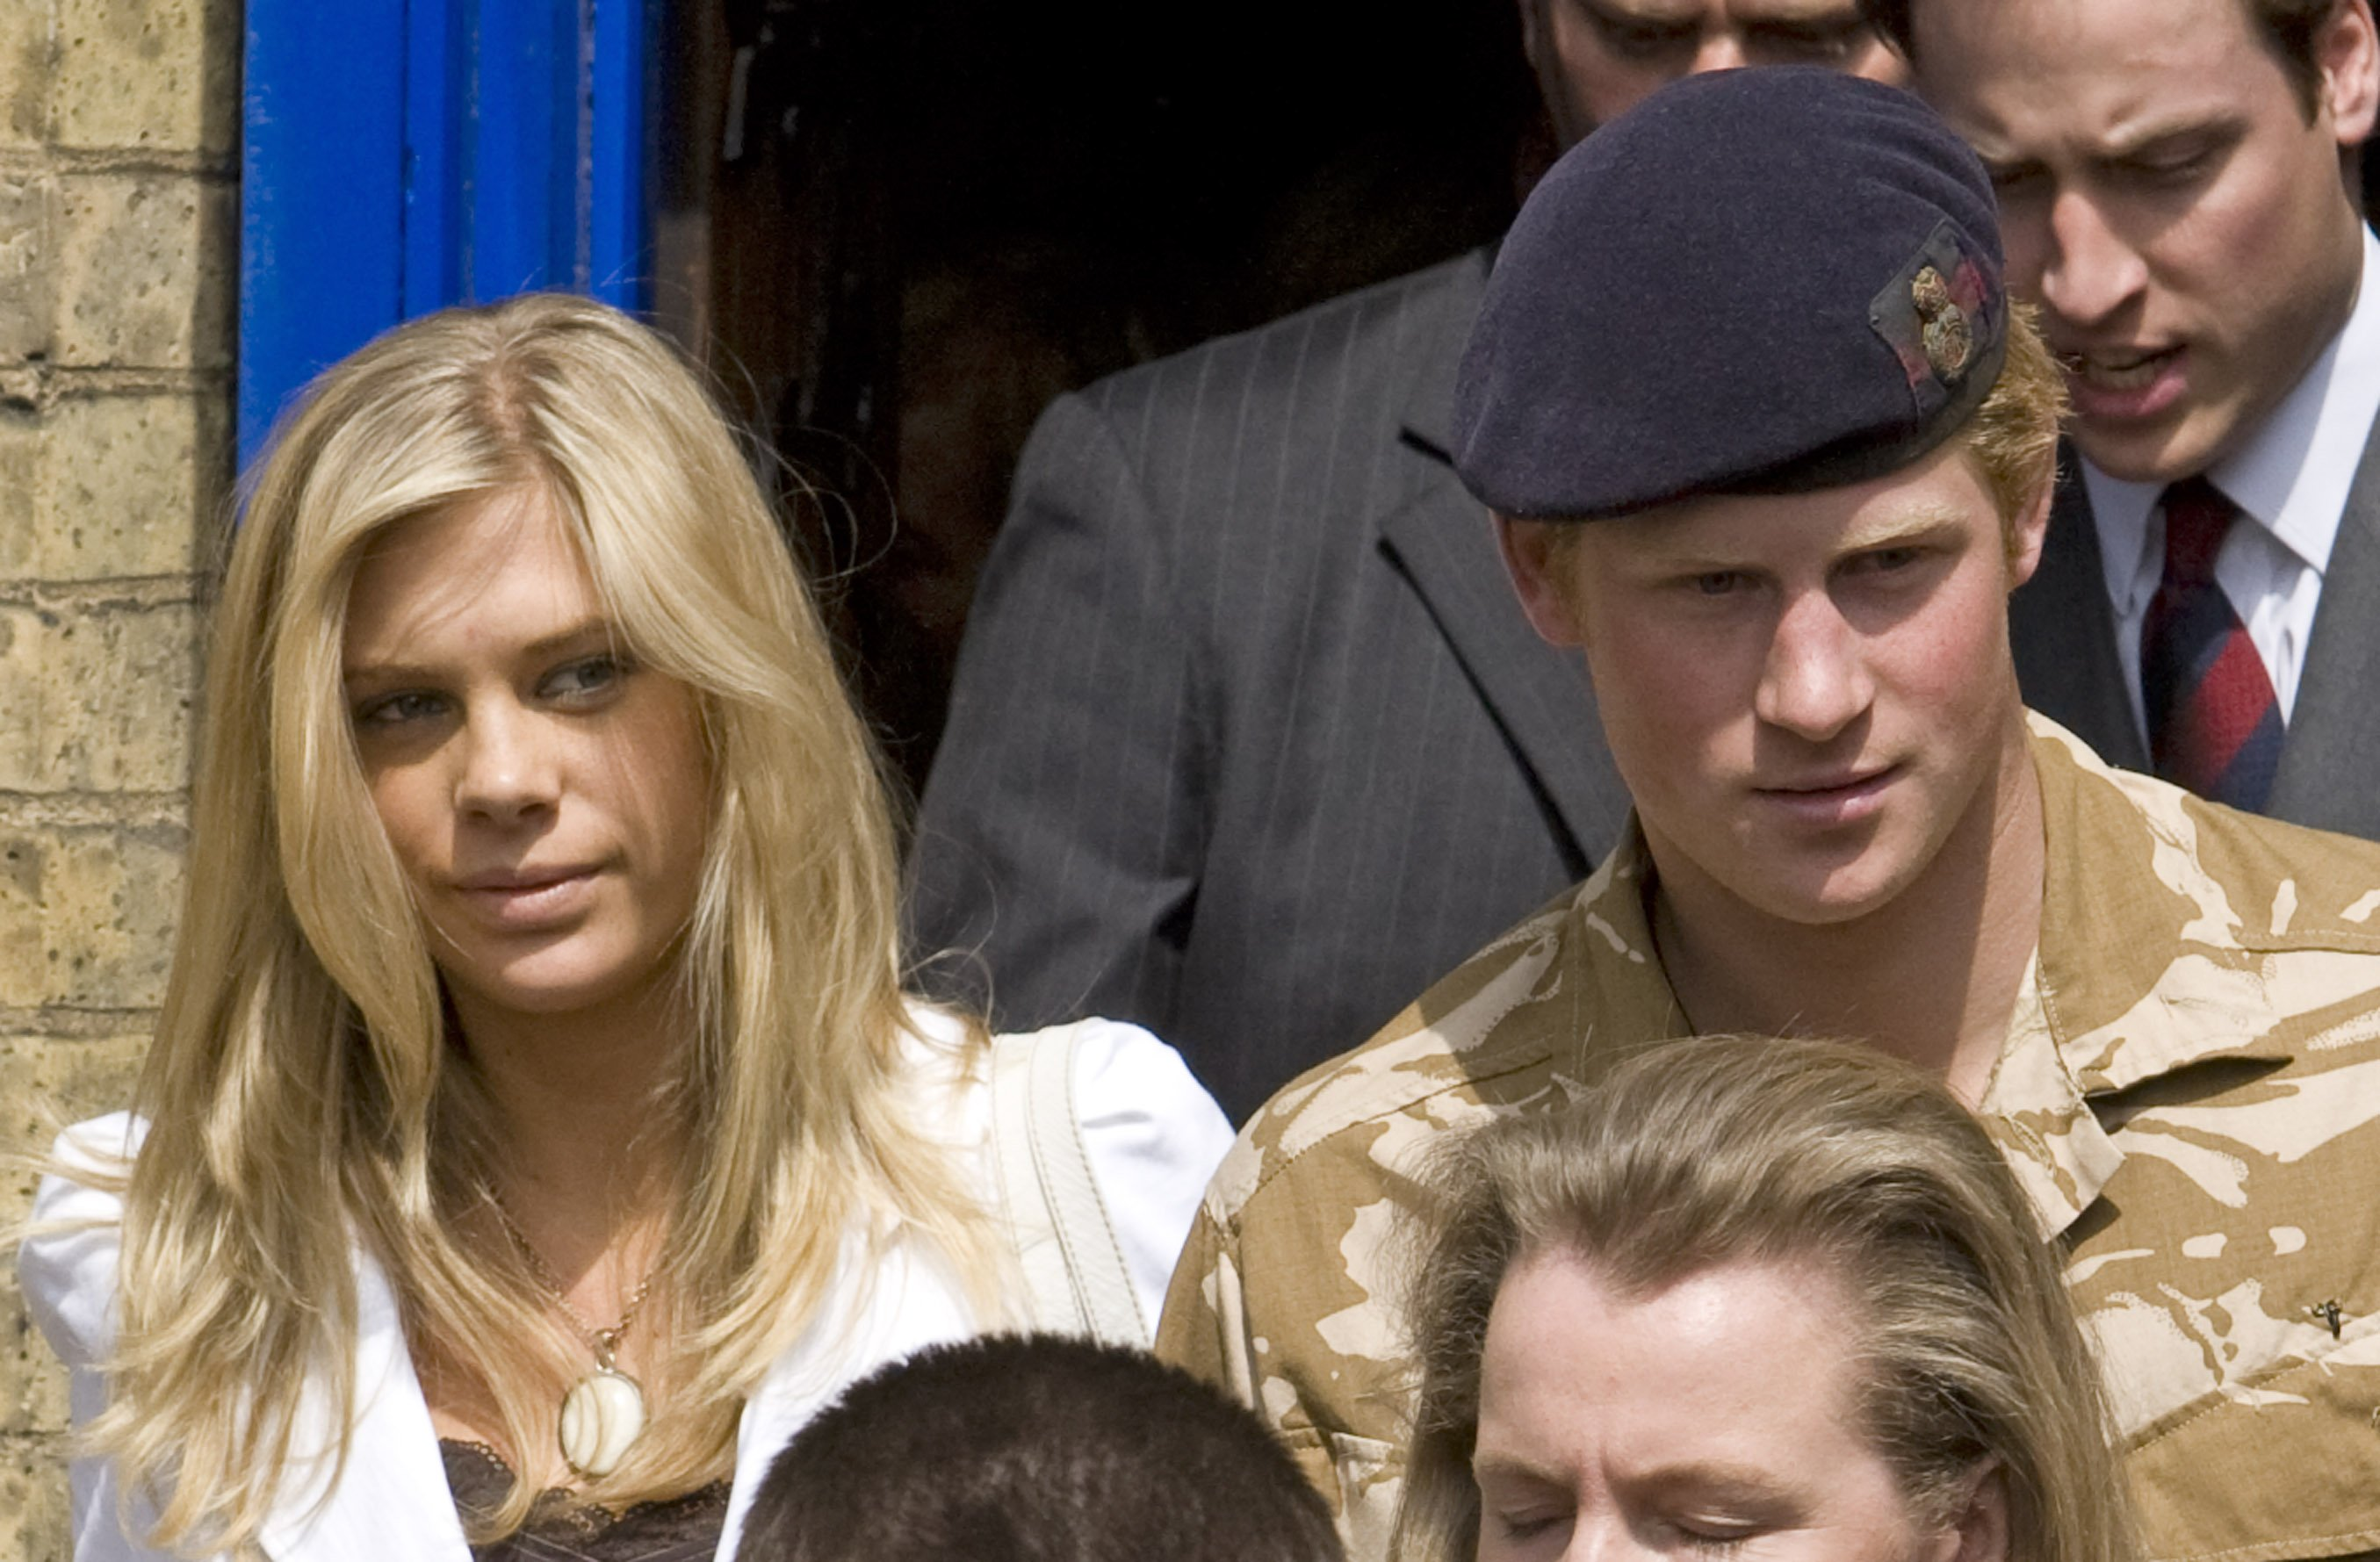 Image Credits: Getty Images / Mark Cuthbert / UK Press   Prince Harry With Girlfriend Chelsy Davy.